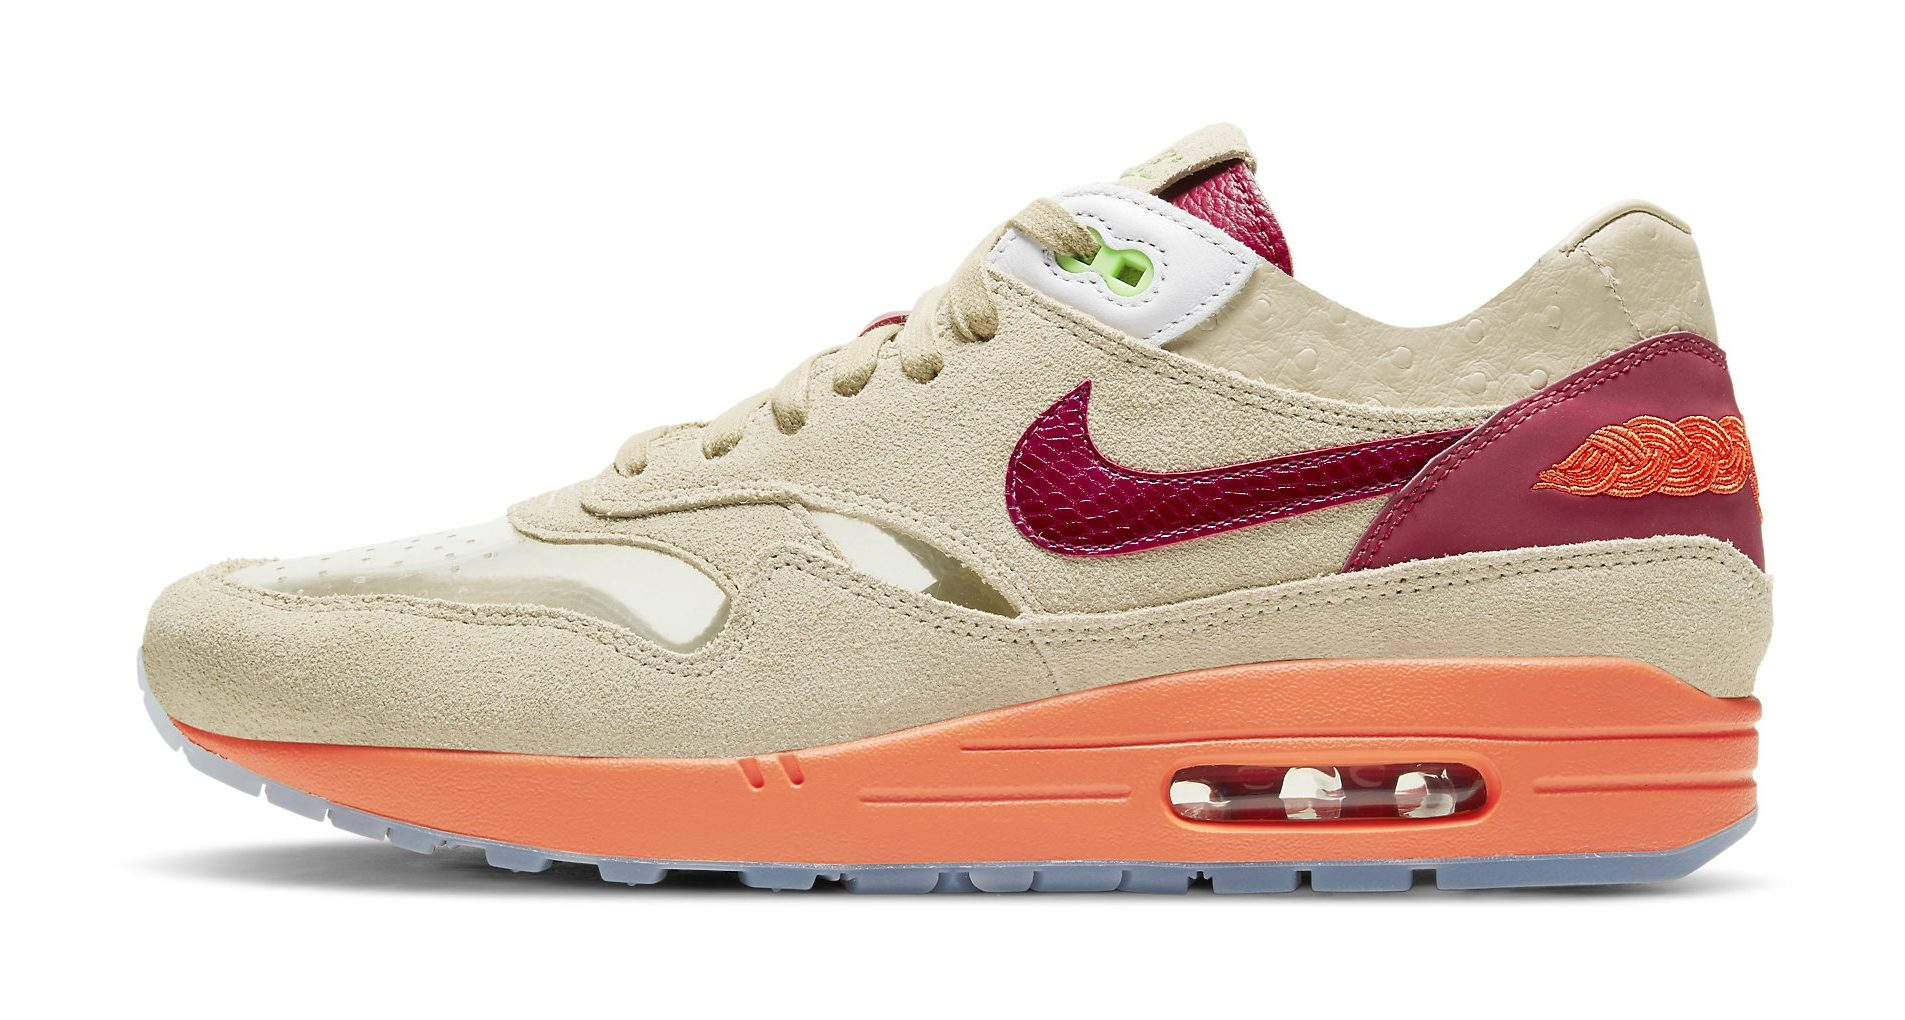 Clot x Nike Air Max 1 'Kiss of Death' Release Info: How to Buy It ...